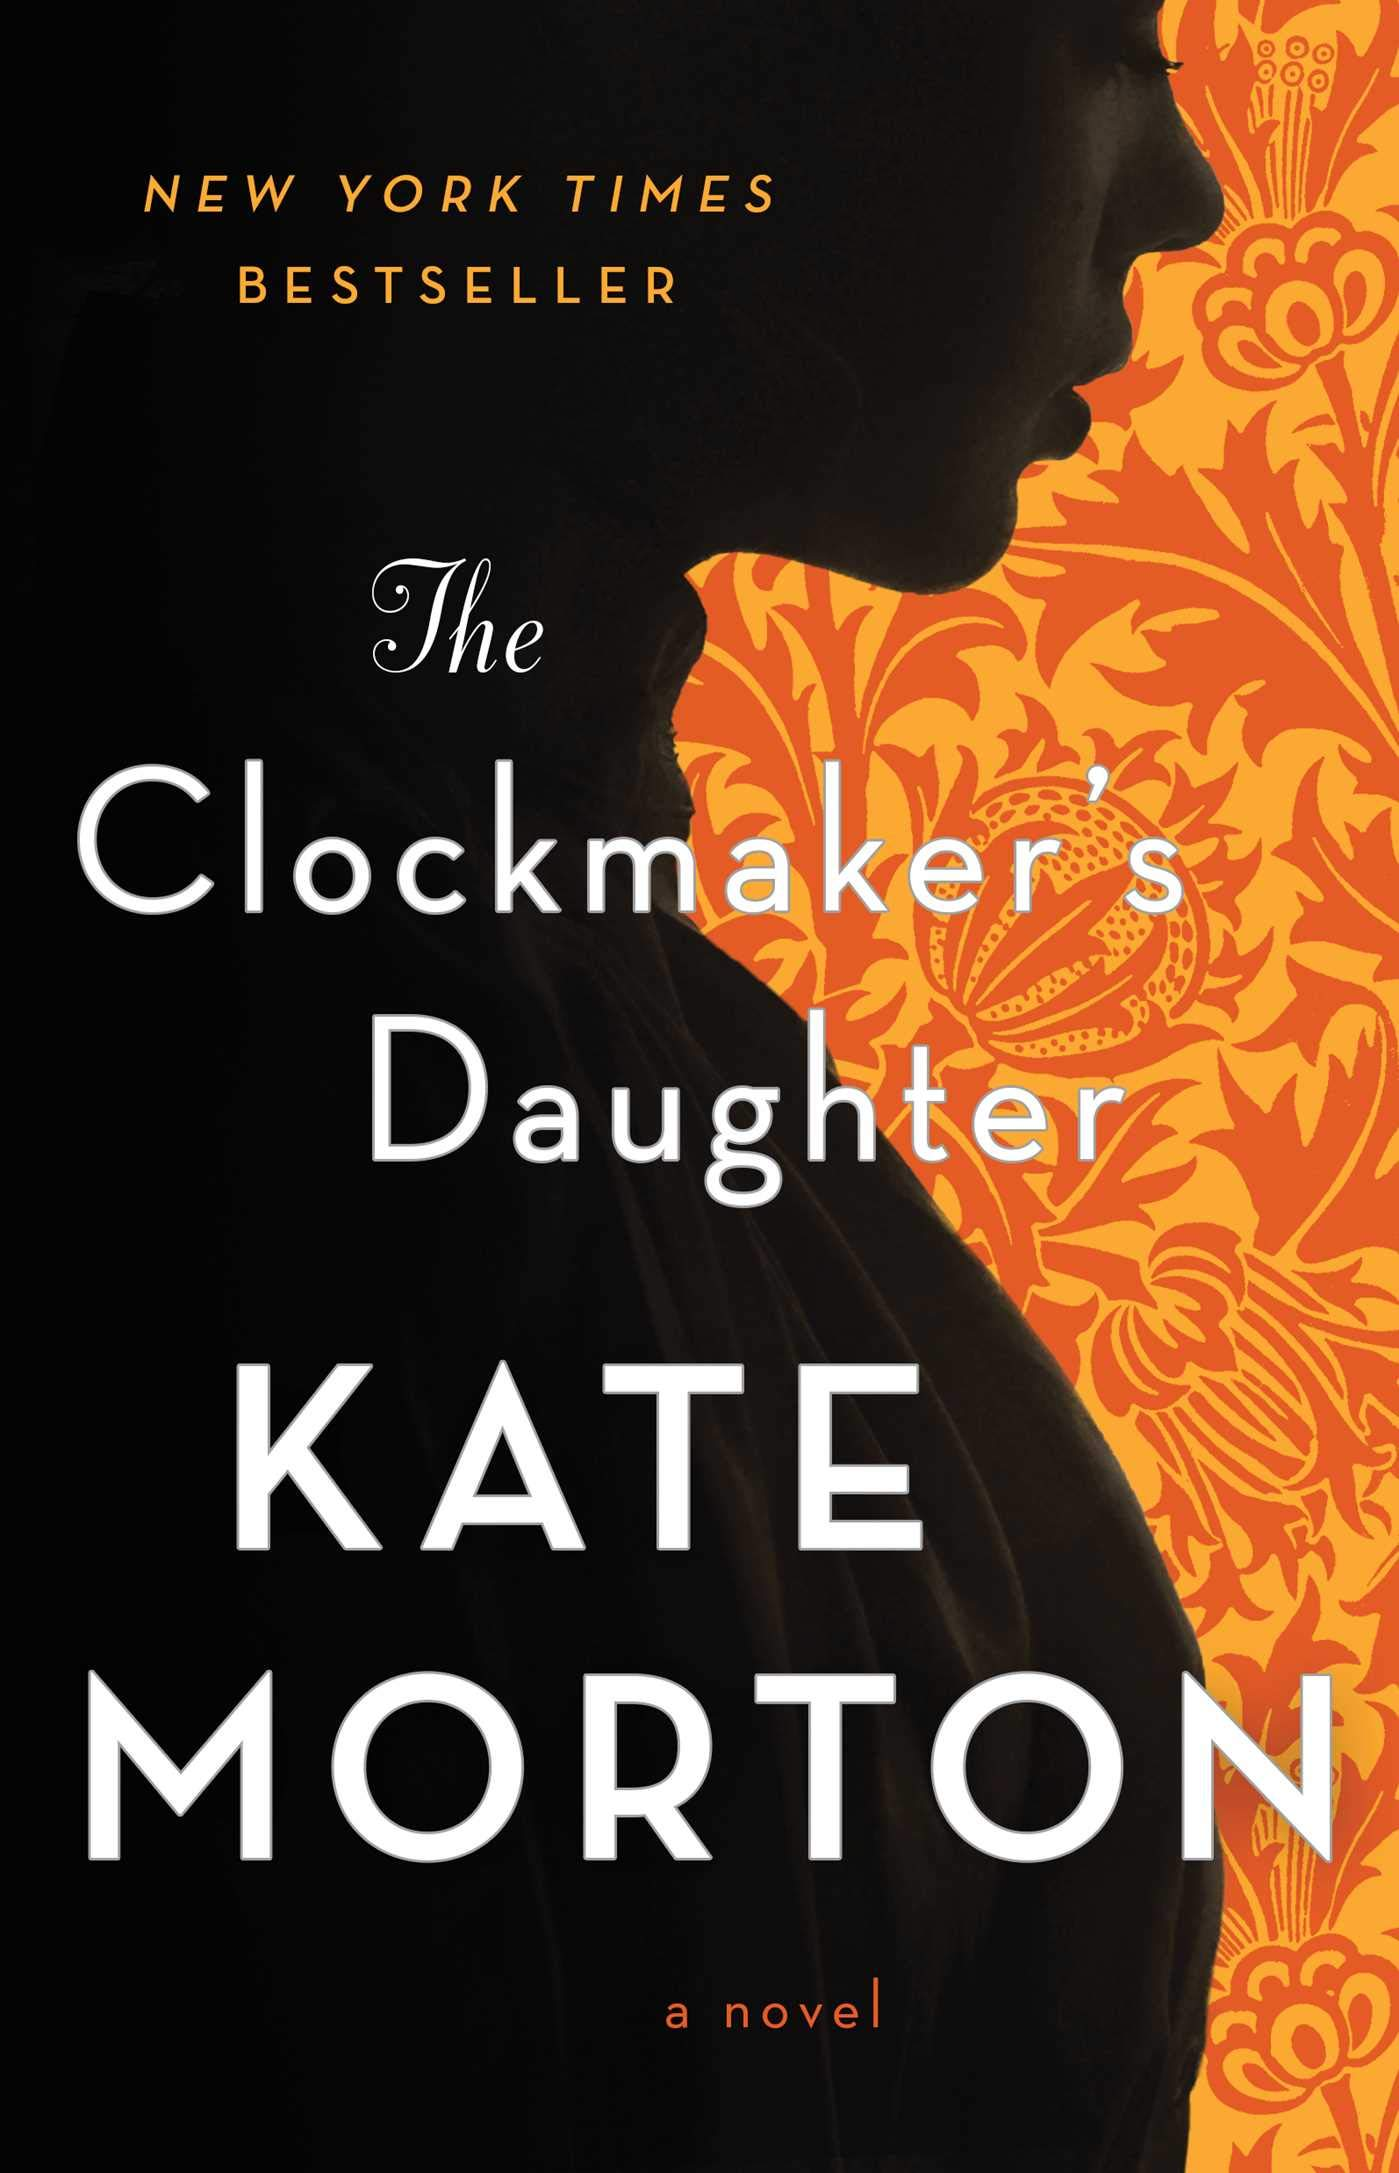 The Clockmaker's Daughter: A Gripping and Heartbreaking Mystery from the Author of The House at Riverton